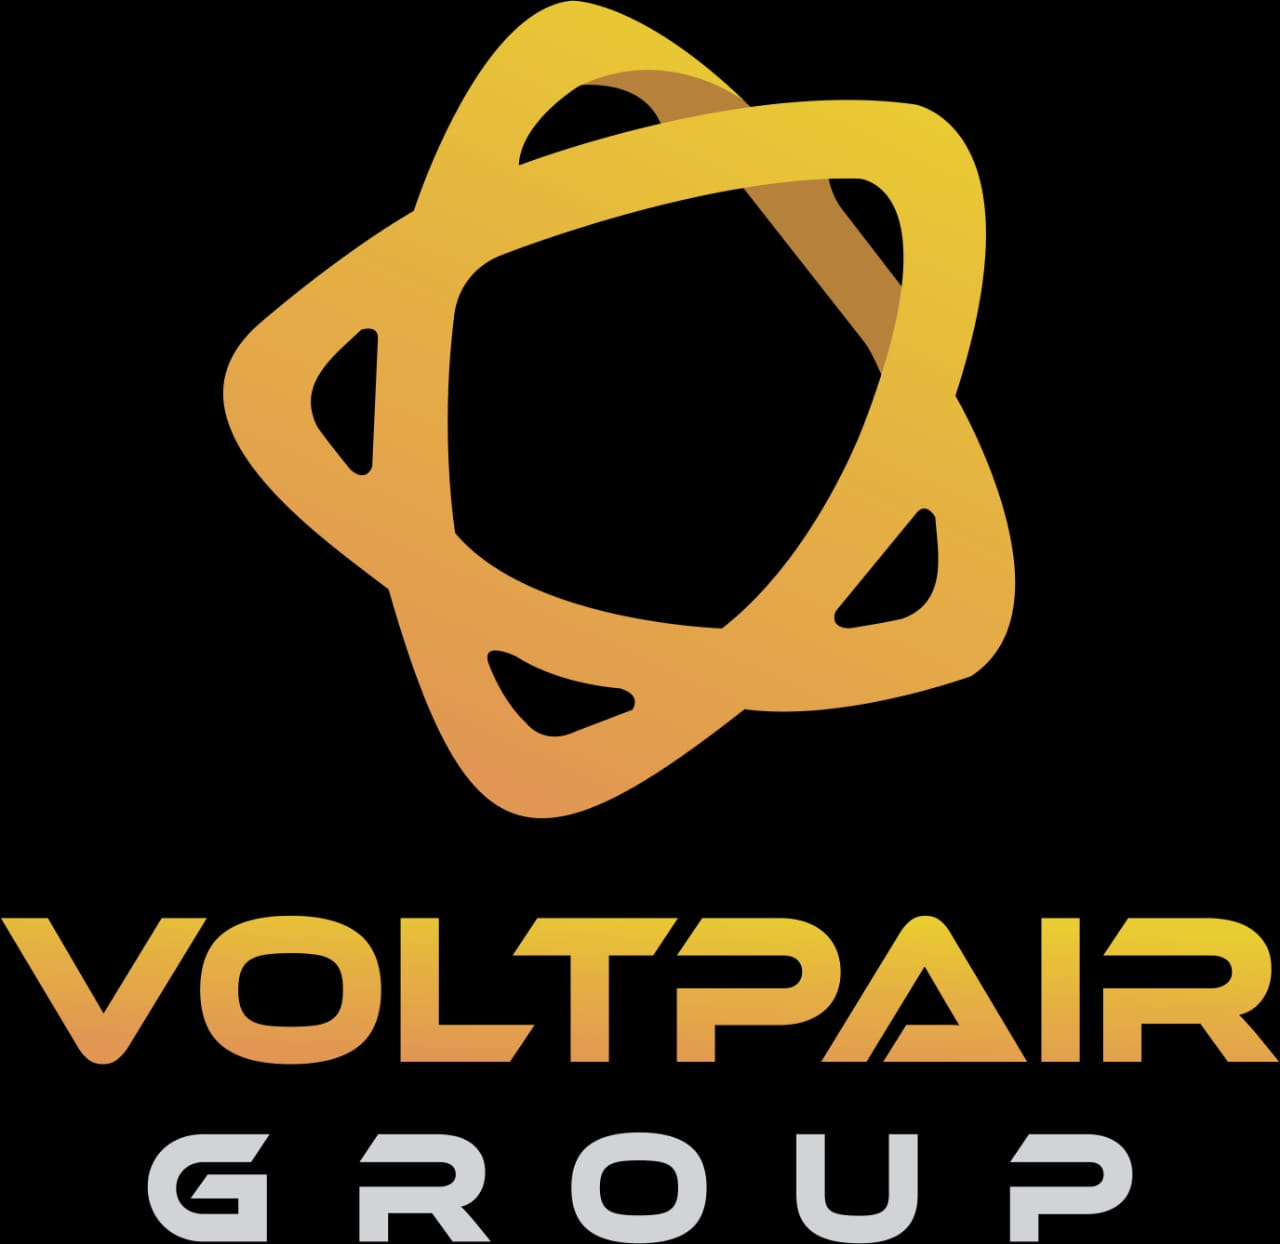 Voltpair Group ( IT Service provider)